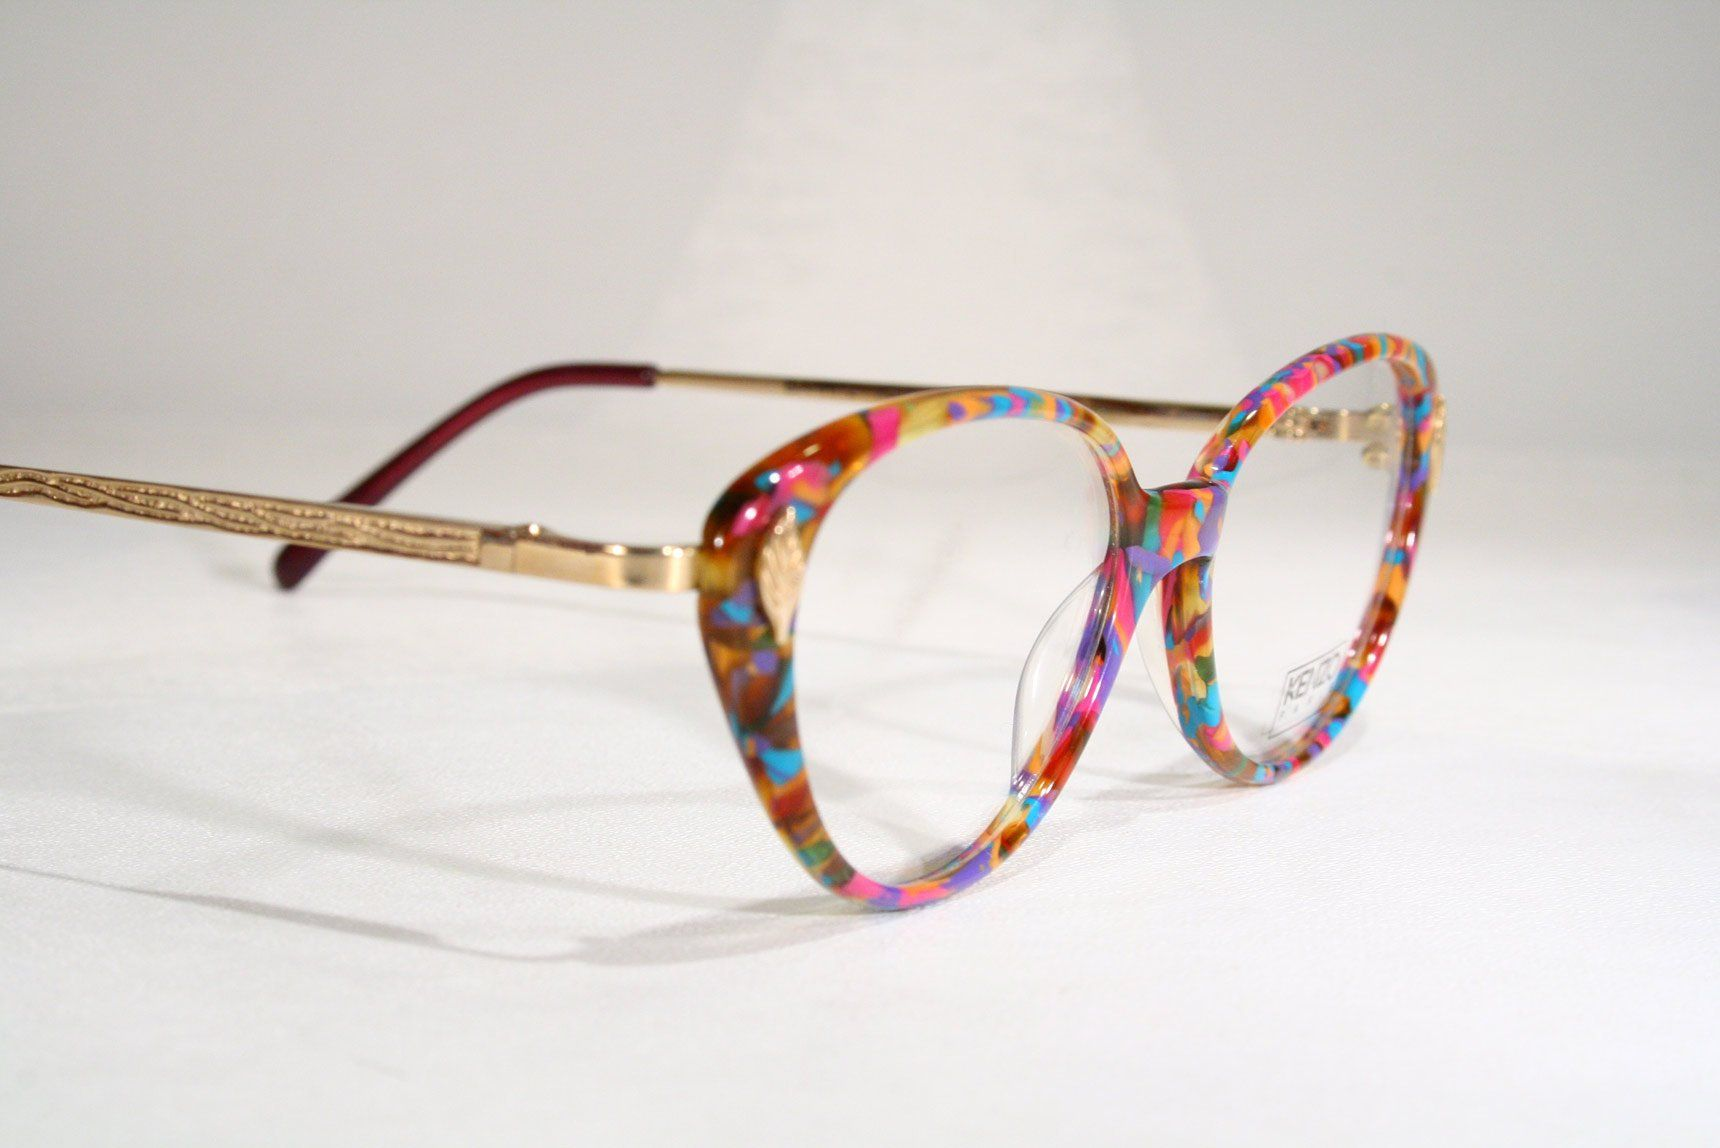 Colorful Kenzo Eyeglasses Frames With Gold Electroplatec Temples And Very Colorful Rims Etsy Ripvanw Frames For Sale Eyeglasses Frames Stuff To Buy